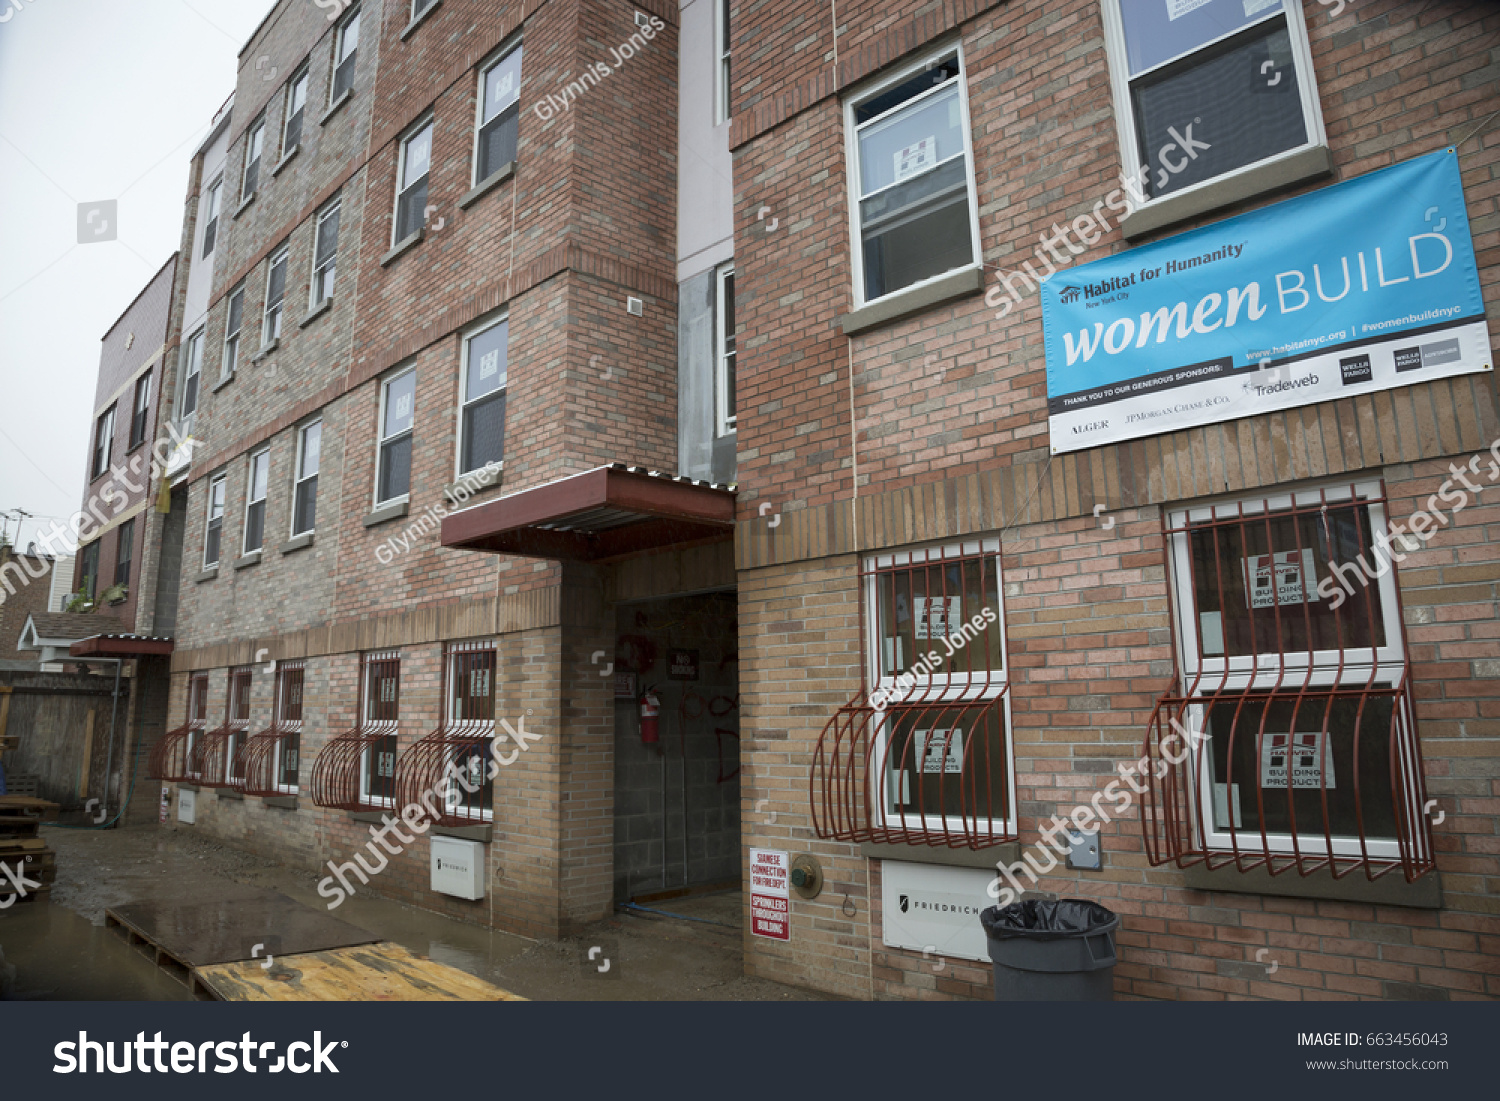 Habitat Outlet Hamburg Brick Exterior Habitat Humanity New York Stock Photo Edit Now